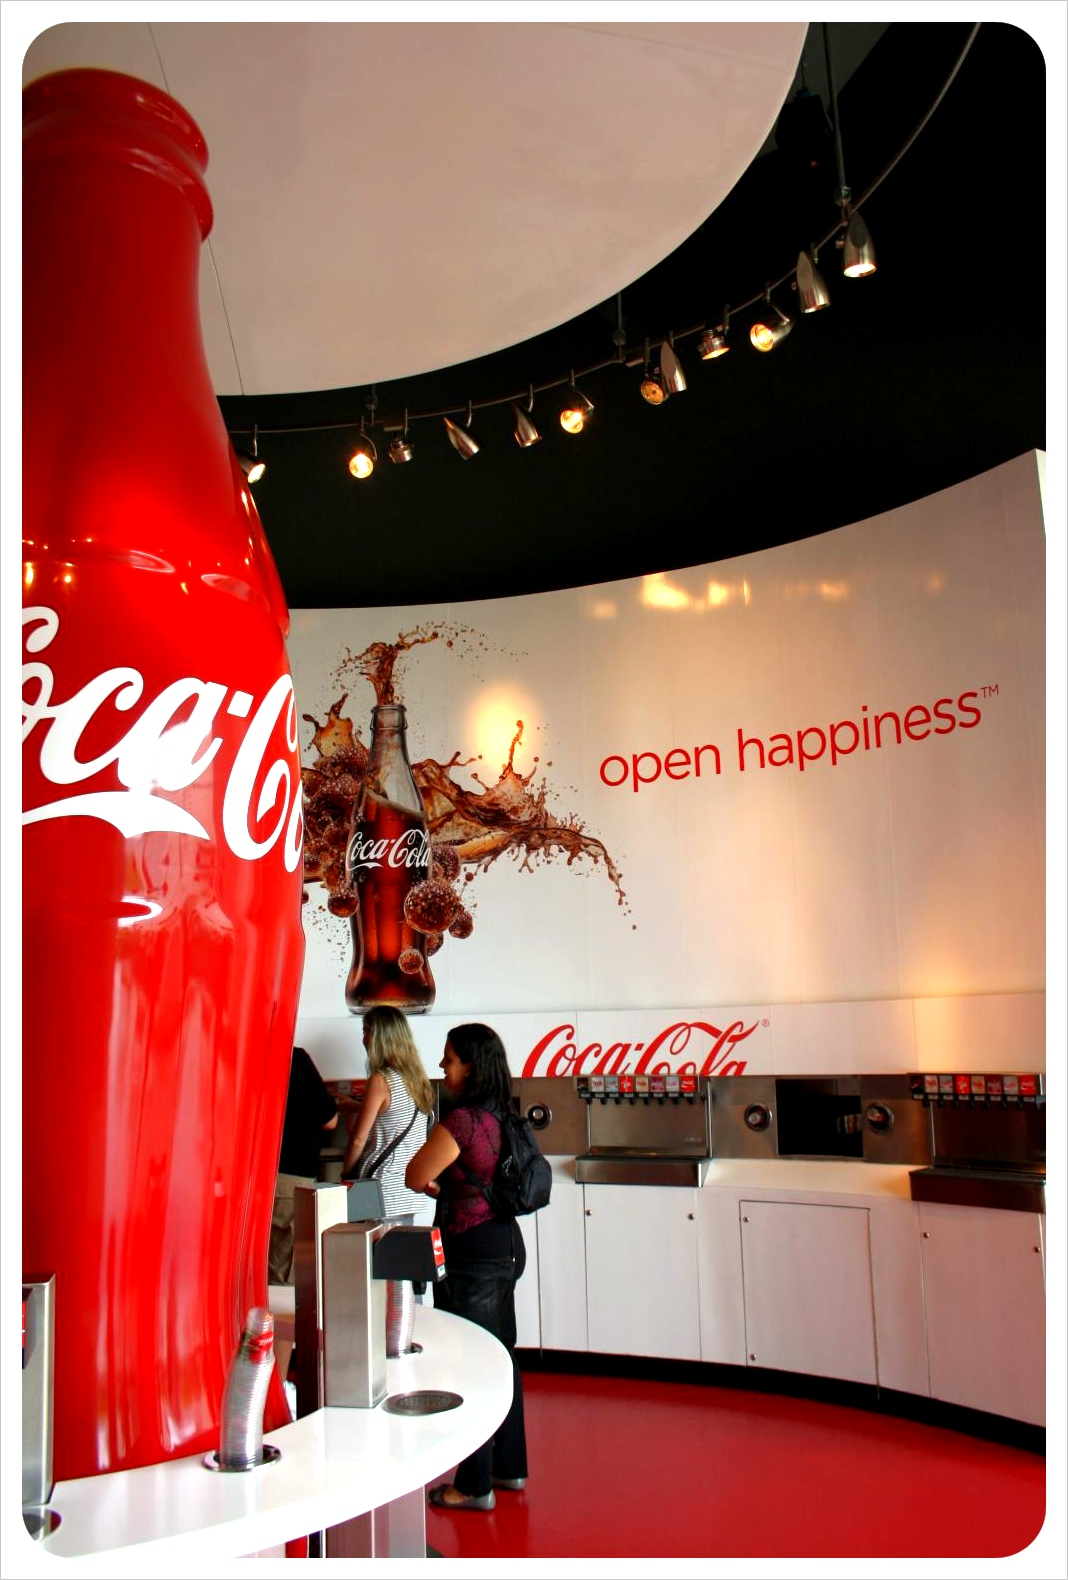 World of coke tasting room